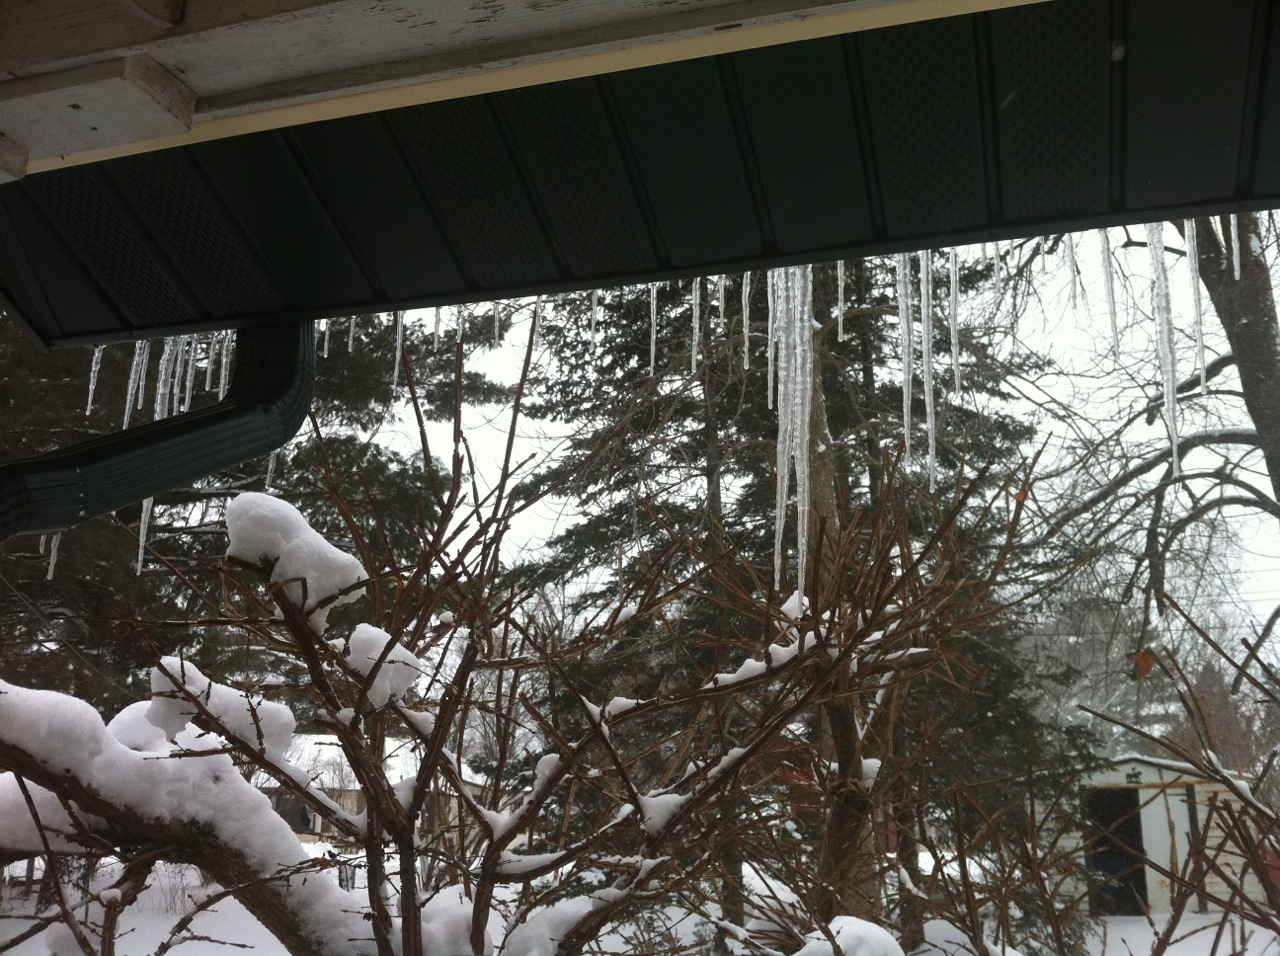 Icicles hanging outside on our way to go sledding